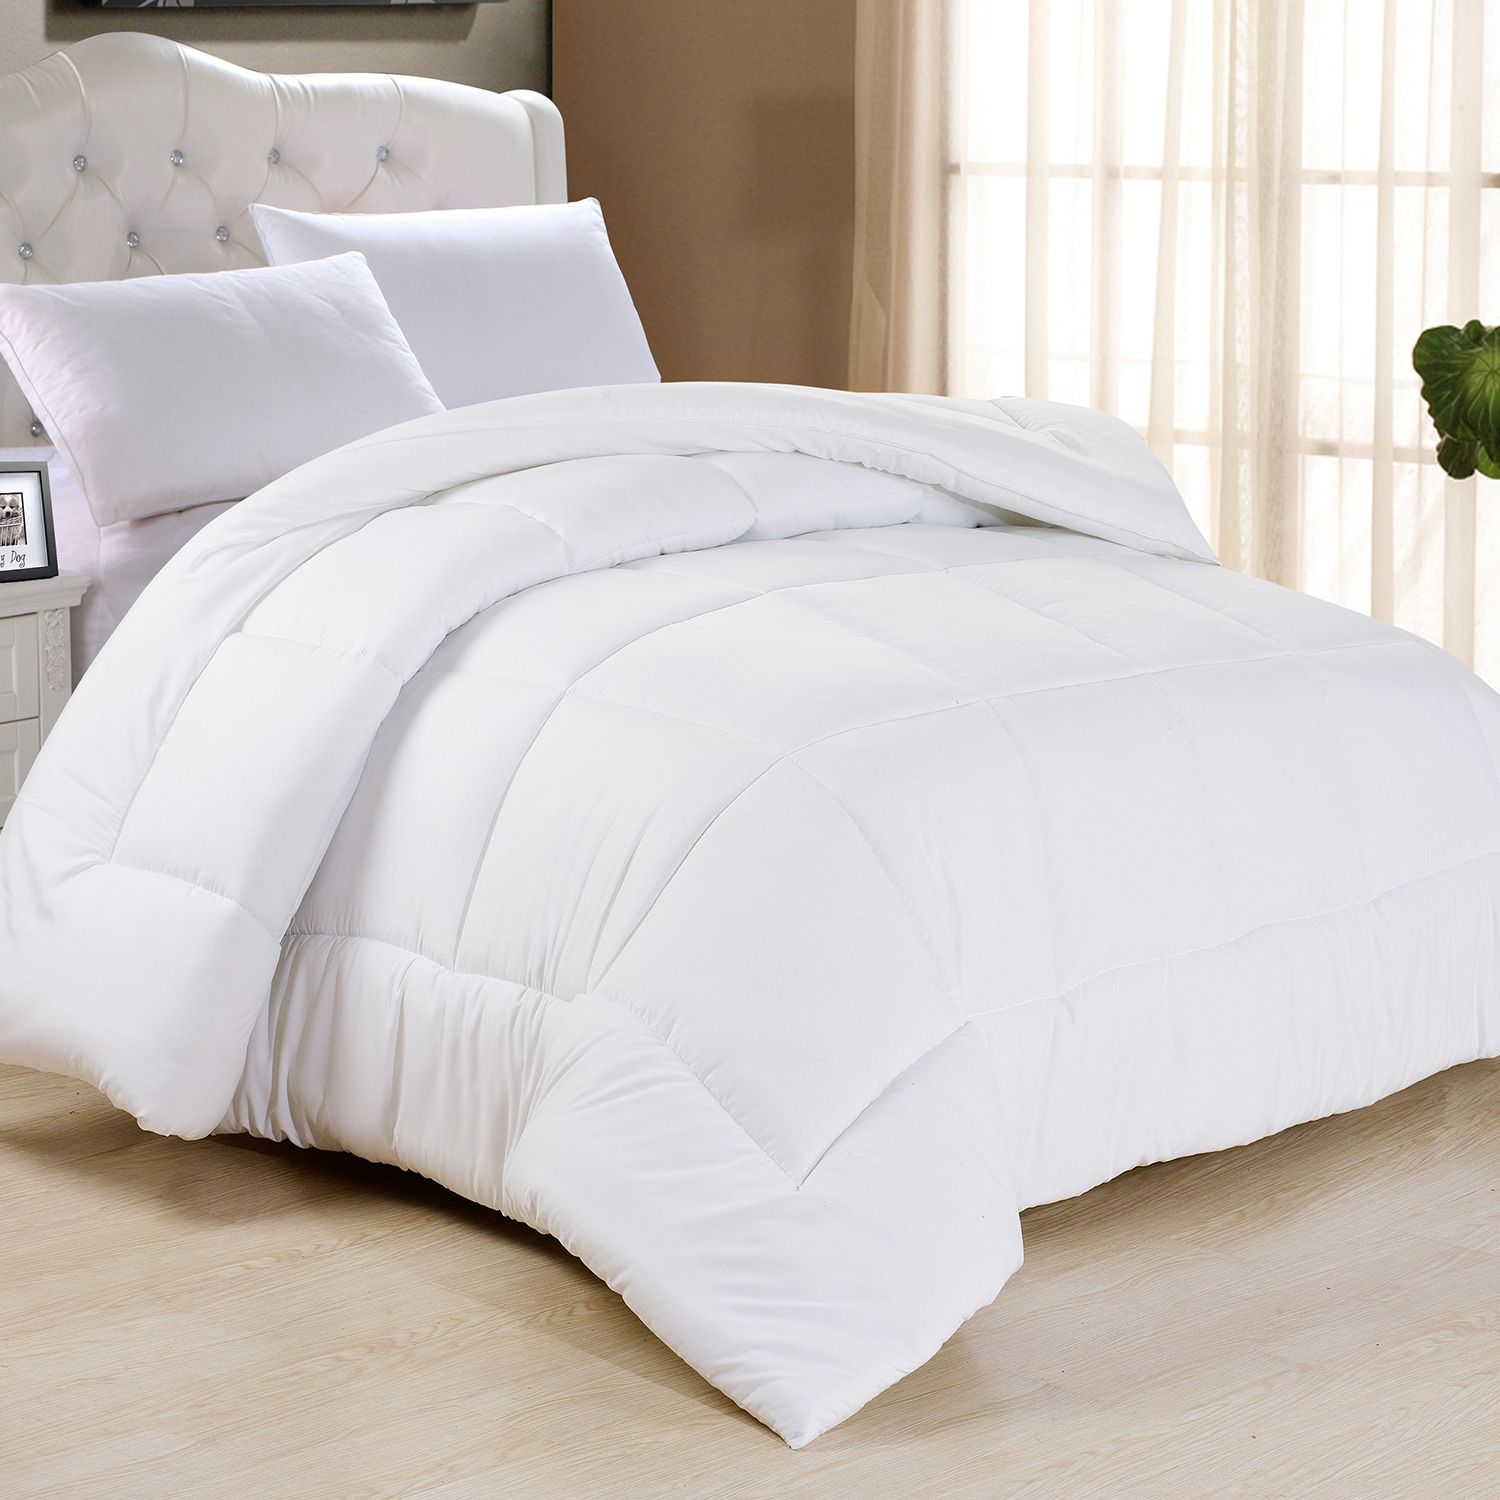 All Season Classic Light Warmth Down Alternative Comforter Bed Comforters Luxury Bedding Down Comforter